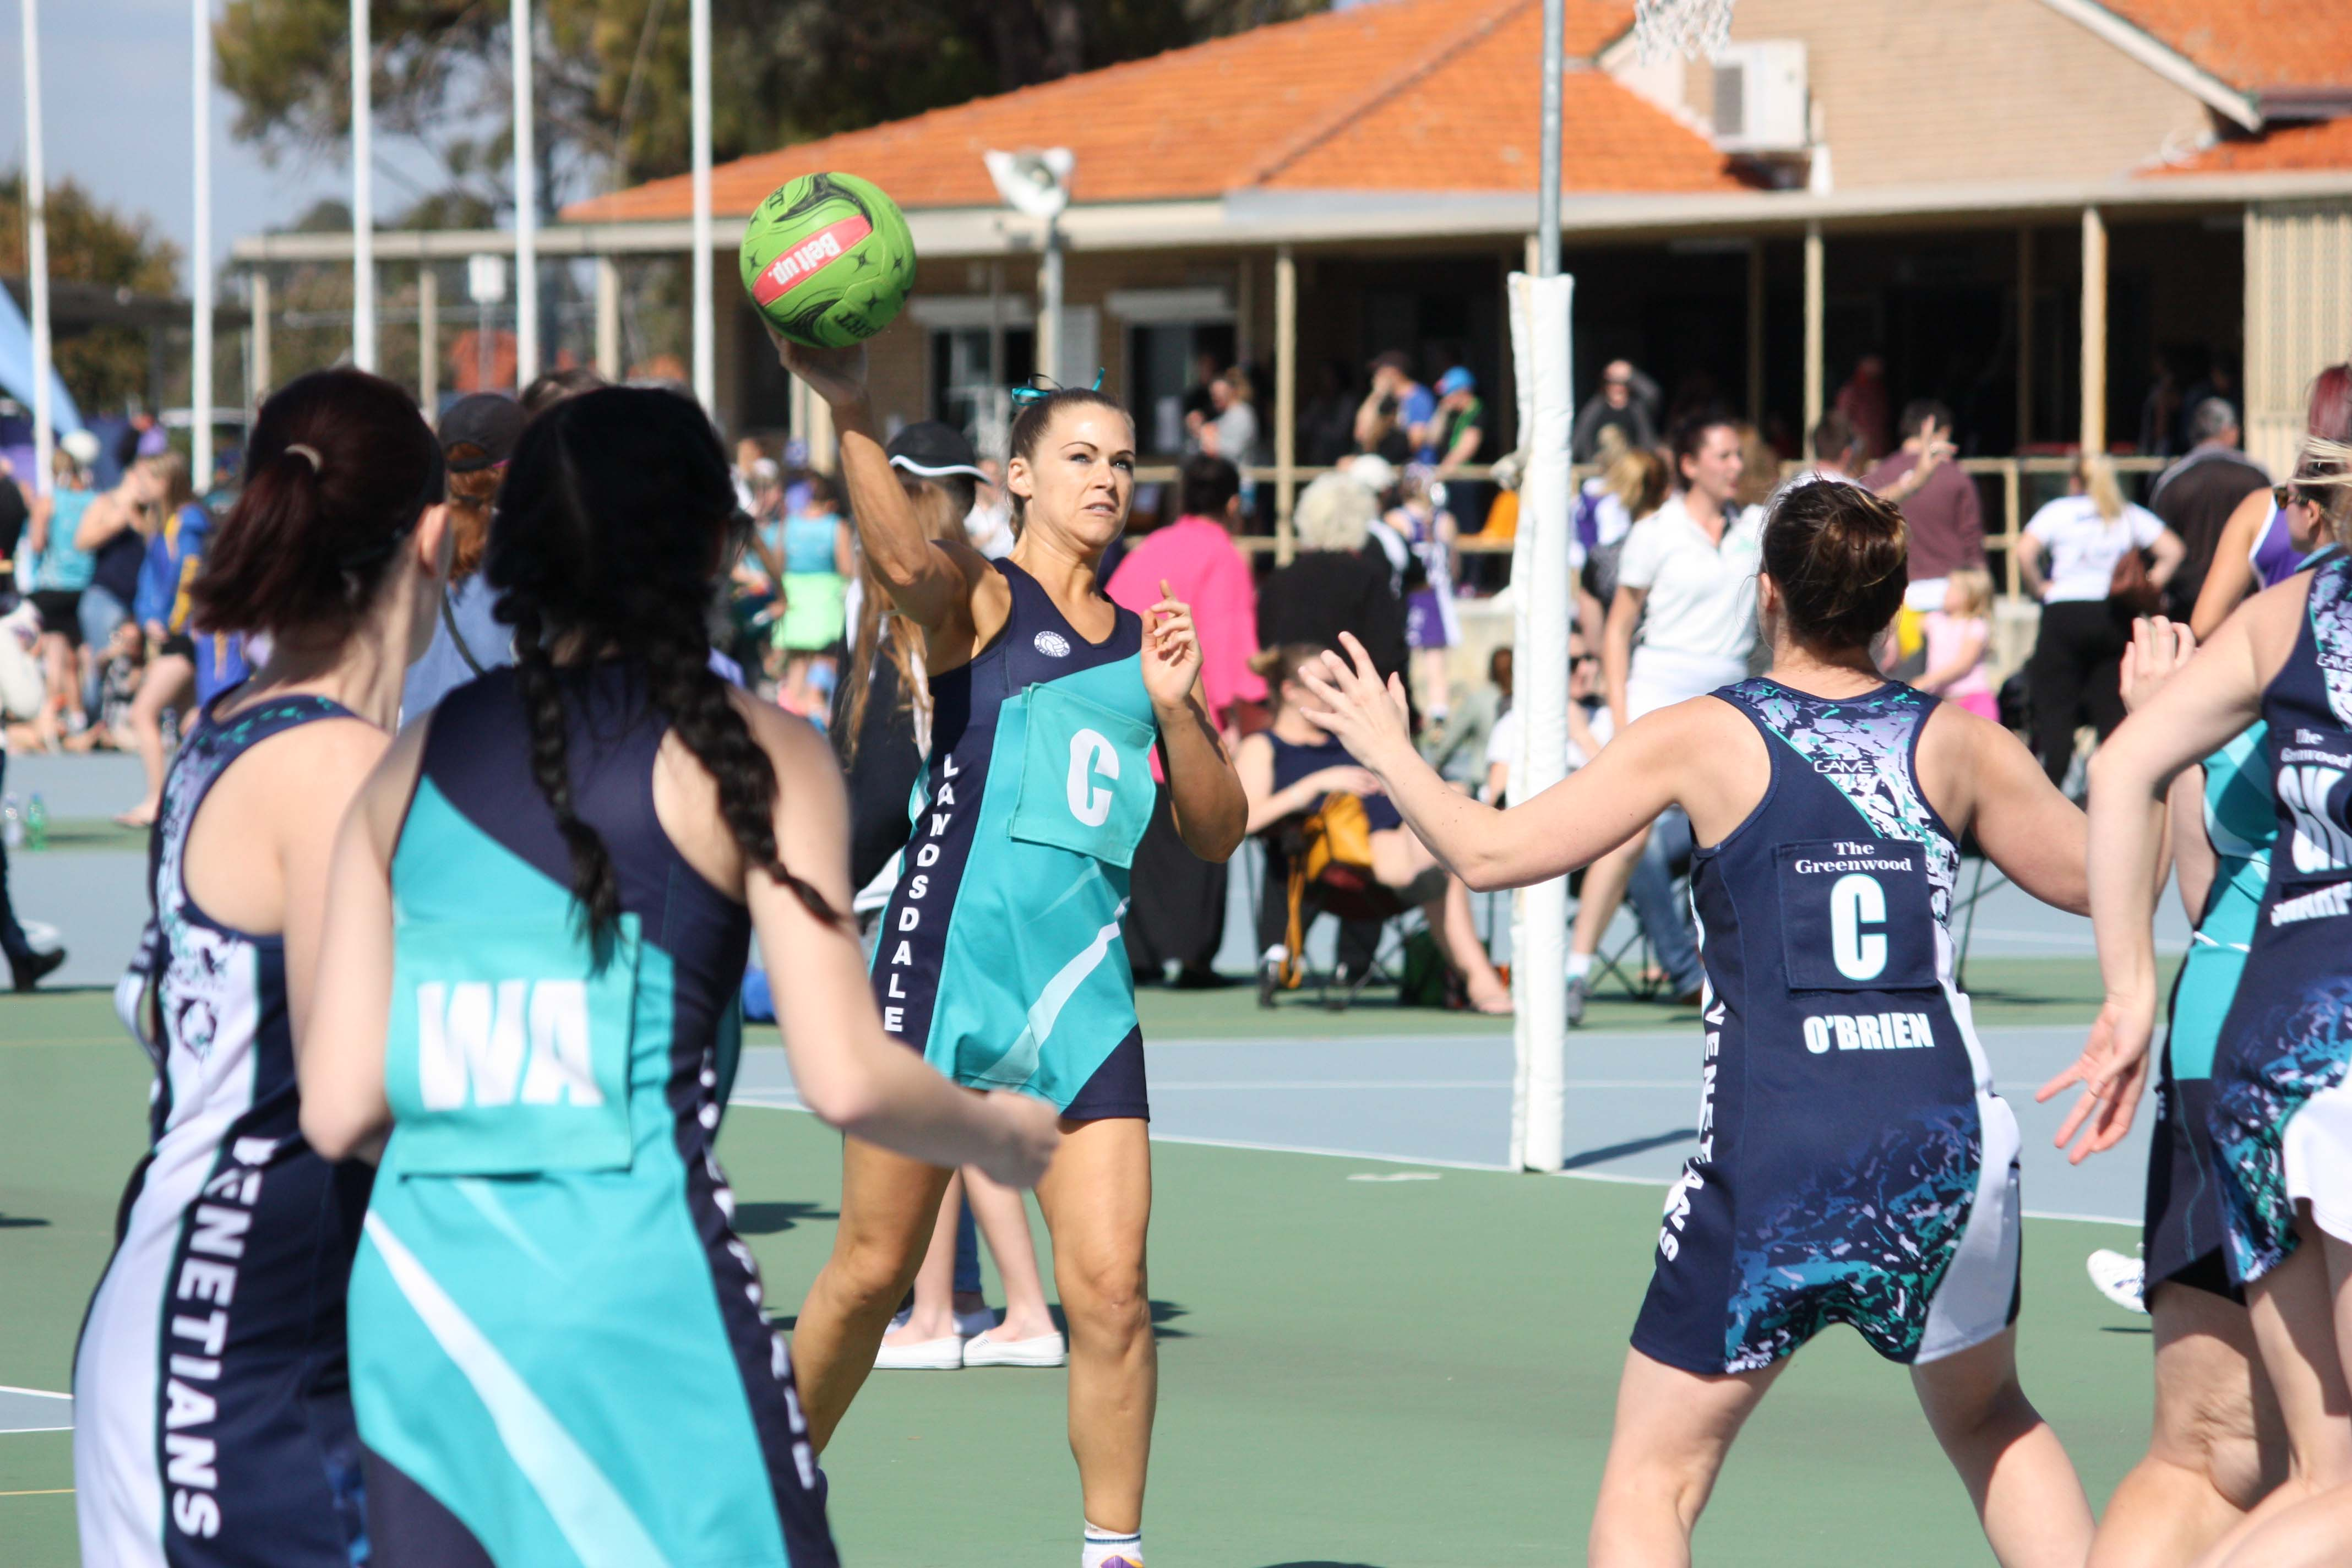 Landsdale Netball Club Open Players8